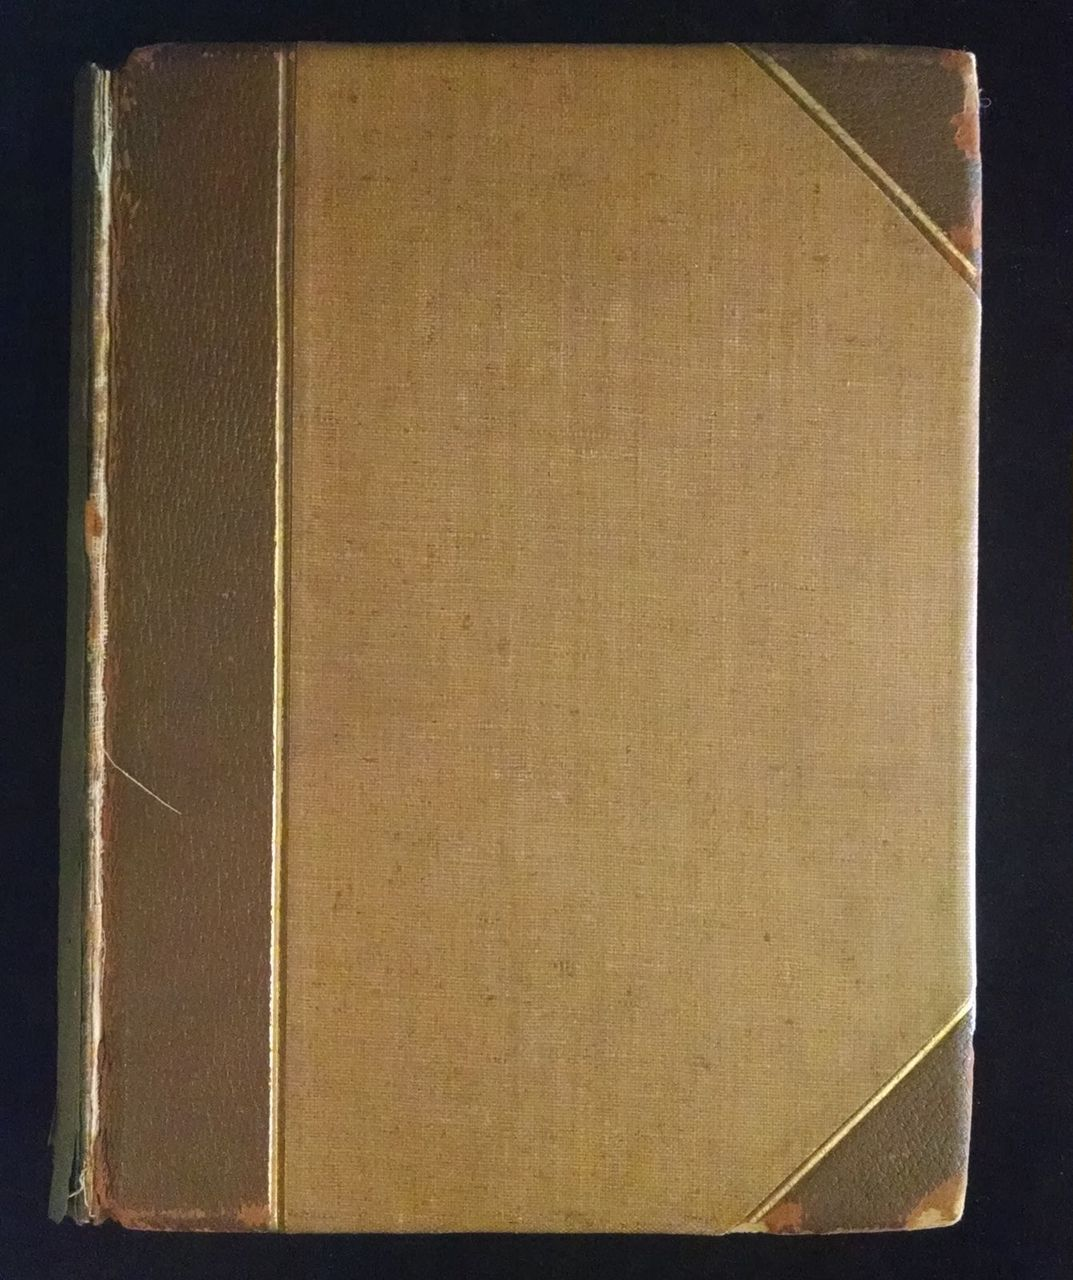 ENGLISH MEZZOTINTS PORTRAITS AND THEIR STATES VOL 2 1926 Art Charles Russell